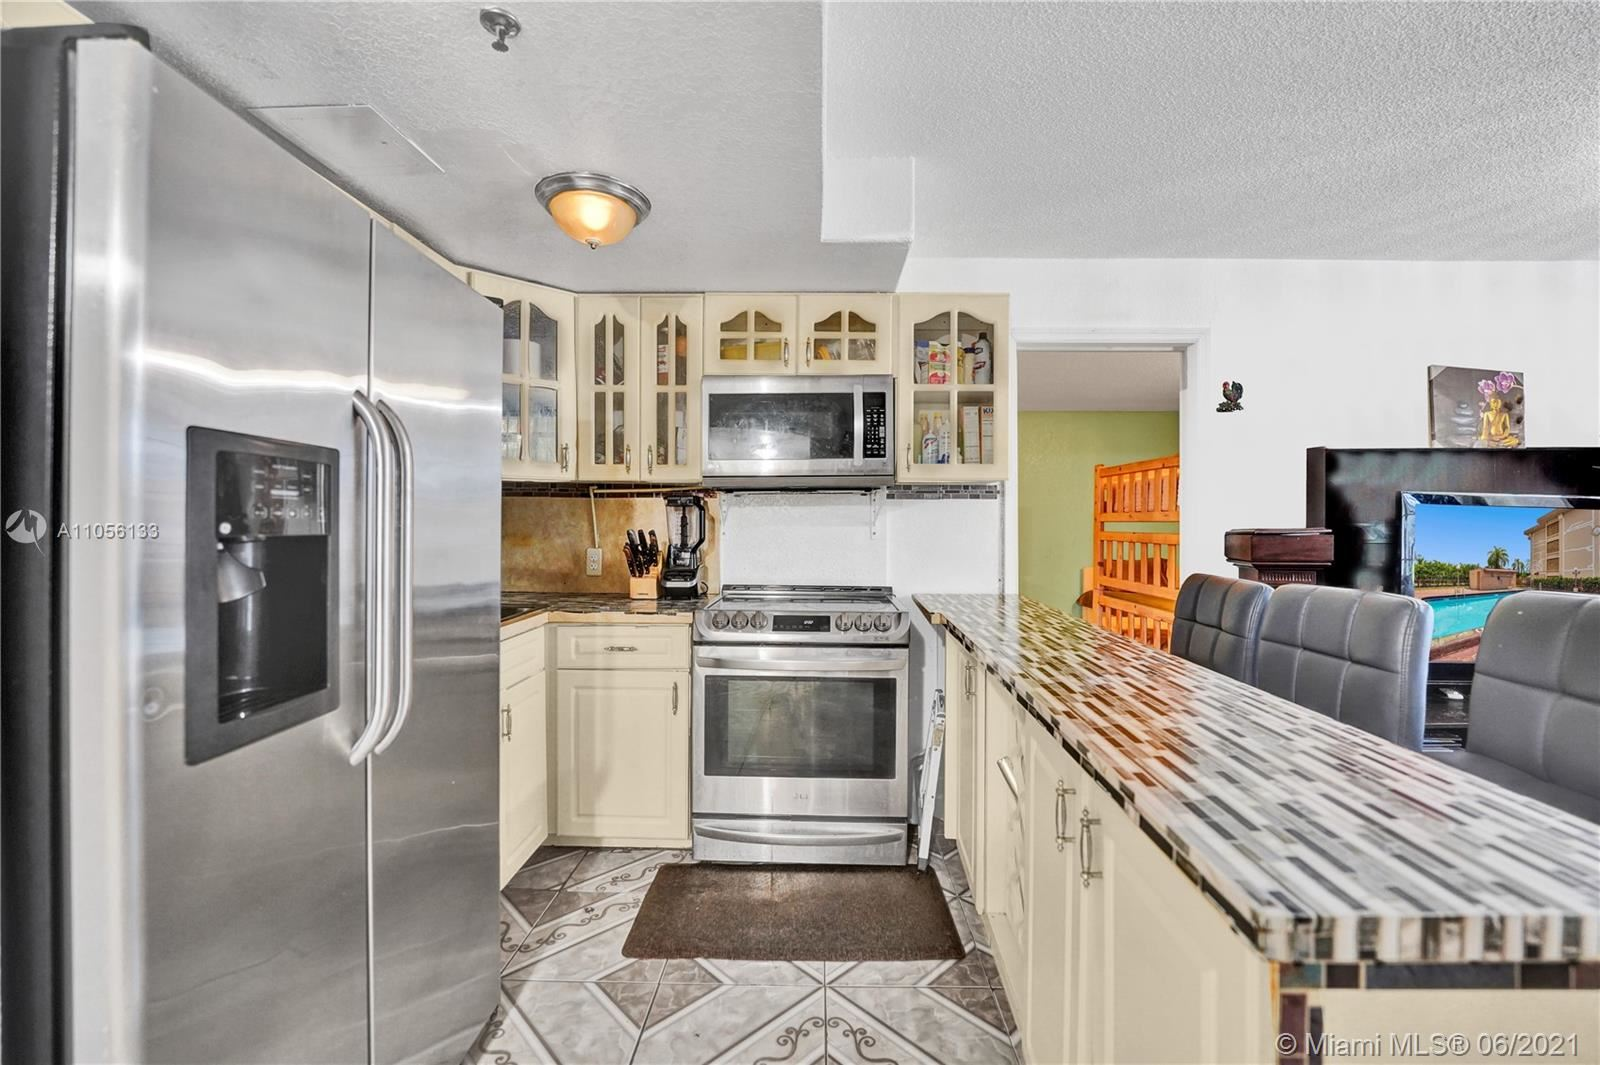 16450 NW 2nd Ave #109, Miami, FL 33169 - #: A11056133